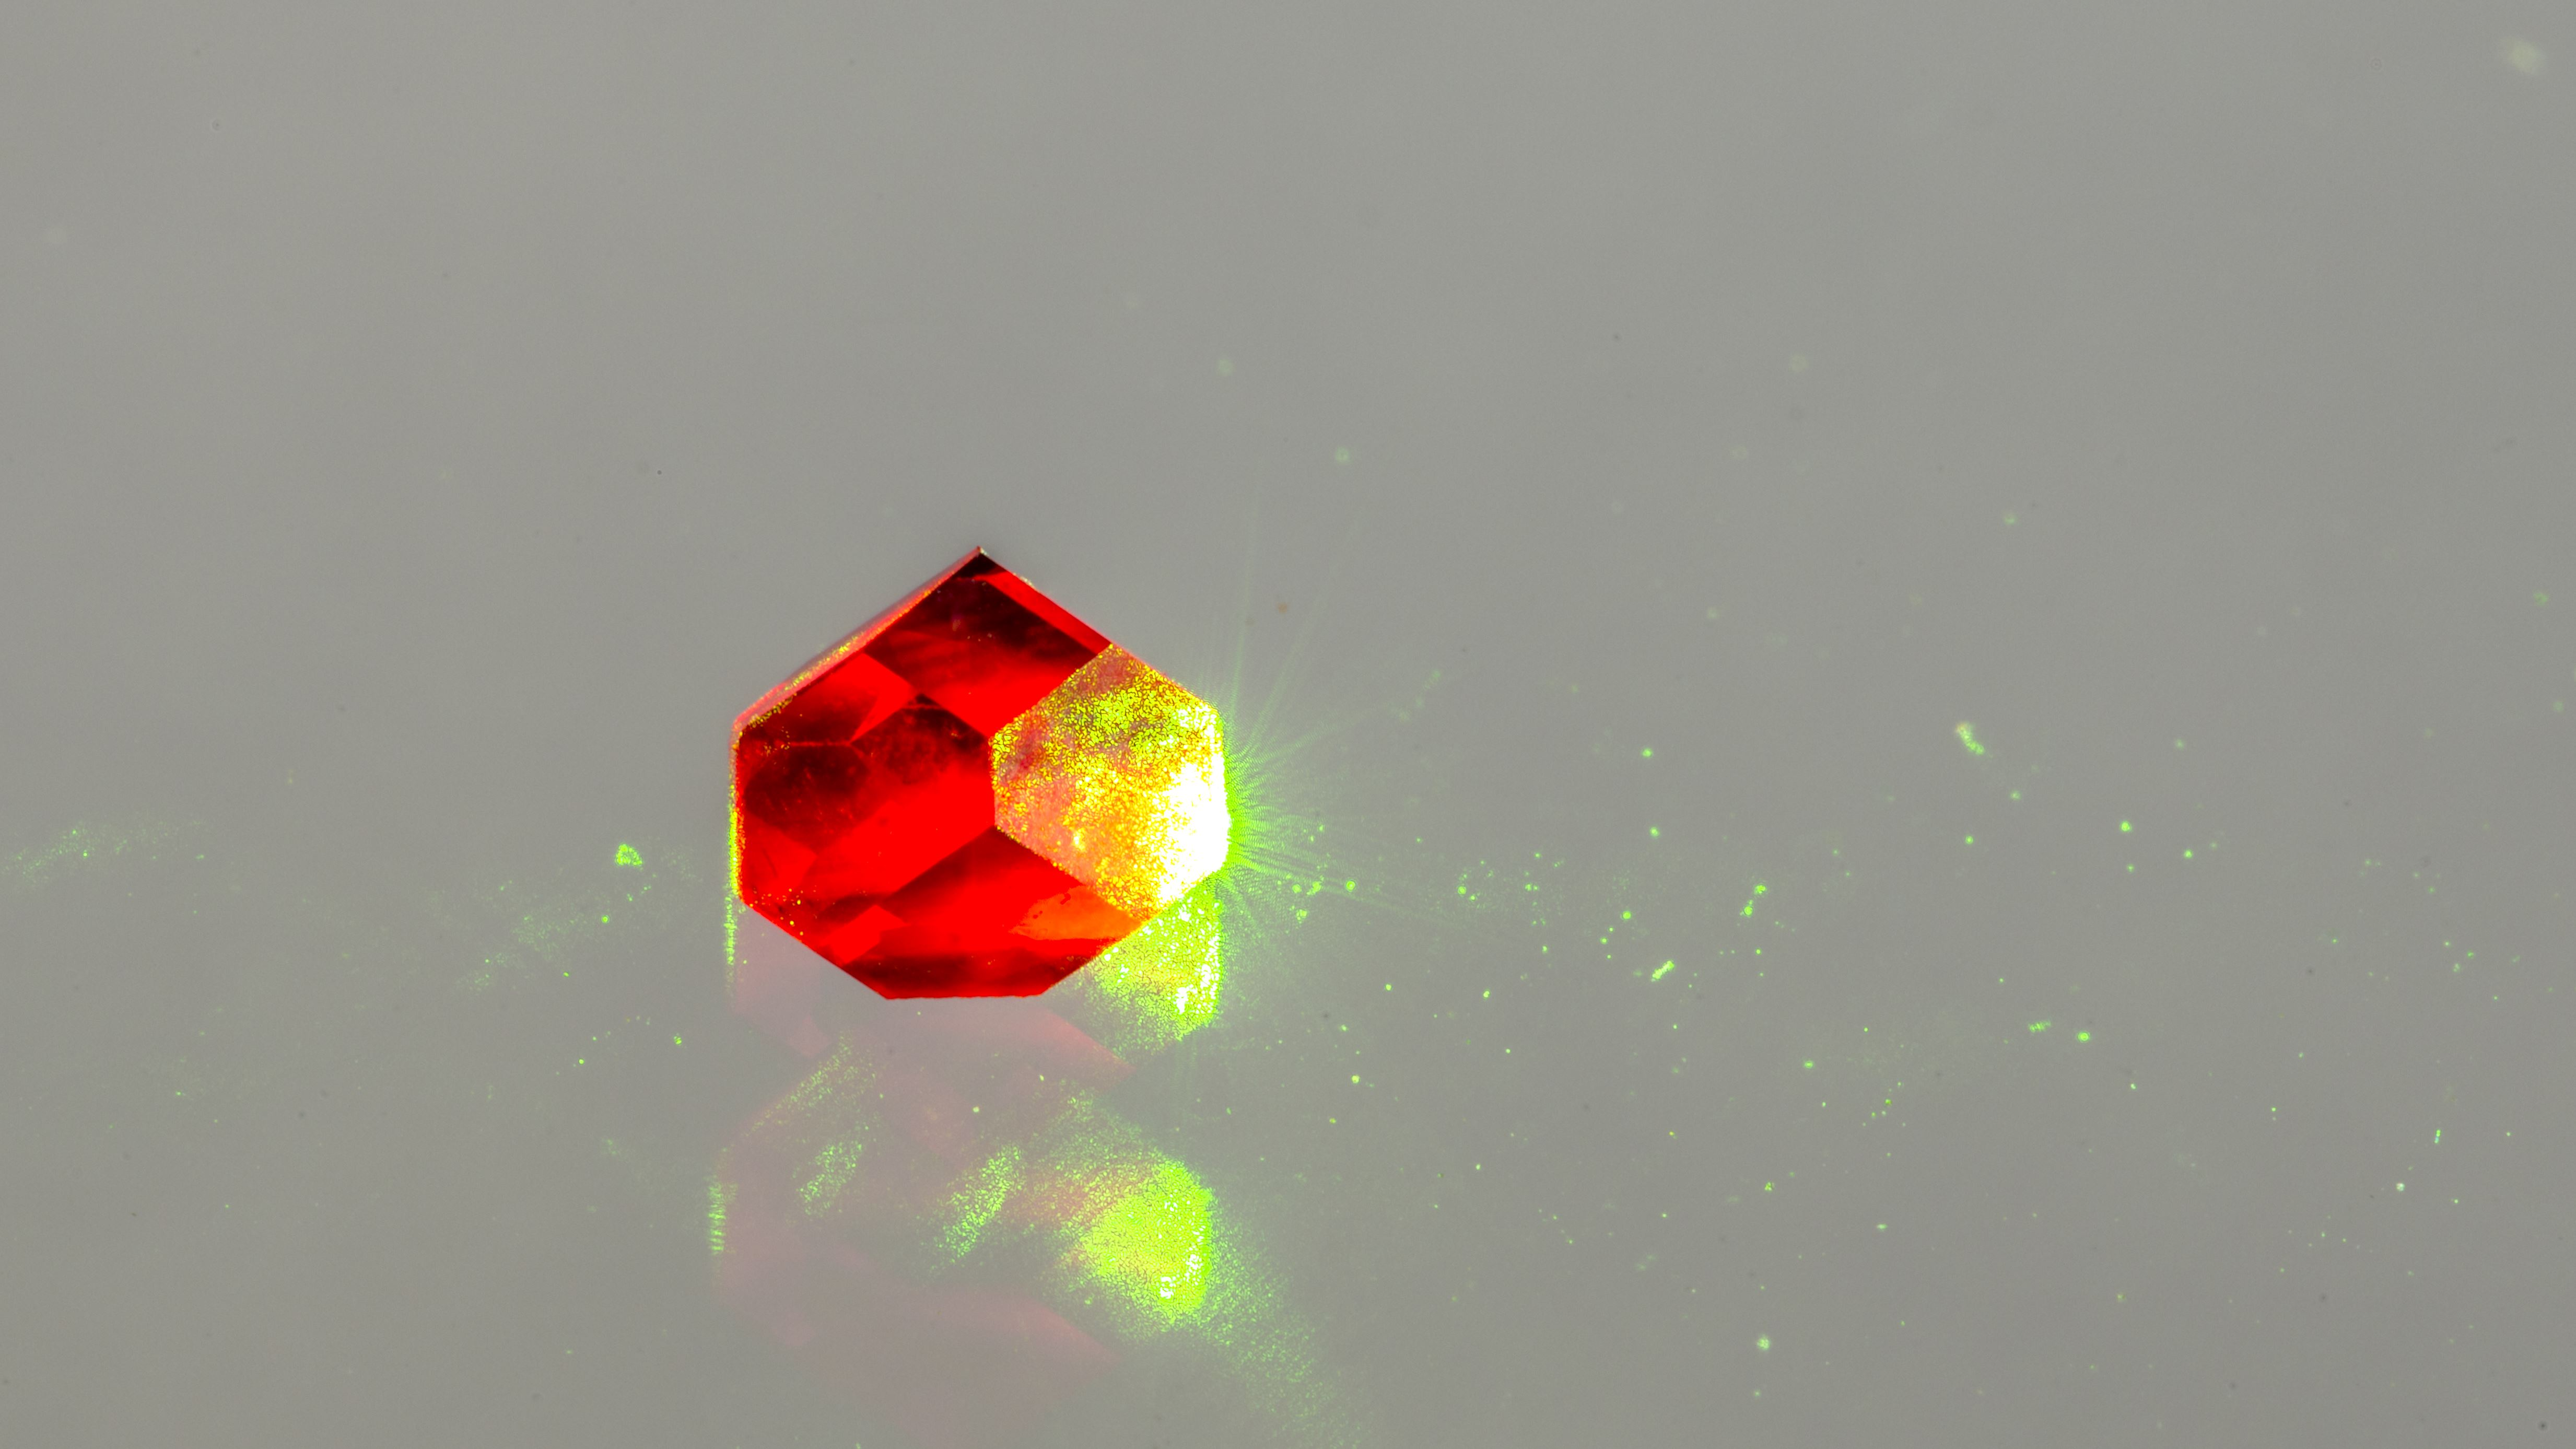 Photograph of diamond containing nitrogen vacancies fluorescing due to illumination with green light. Credit: Jon Newland